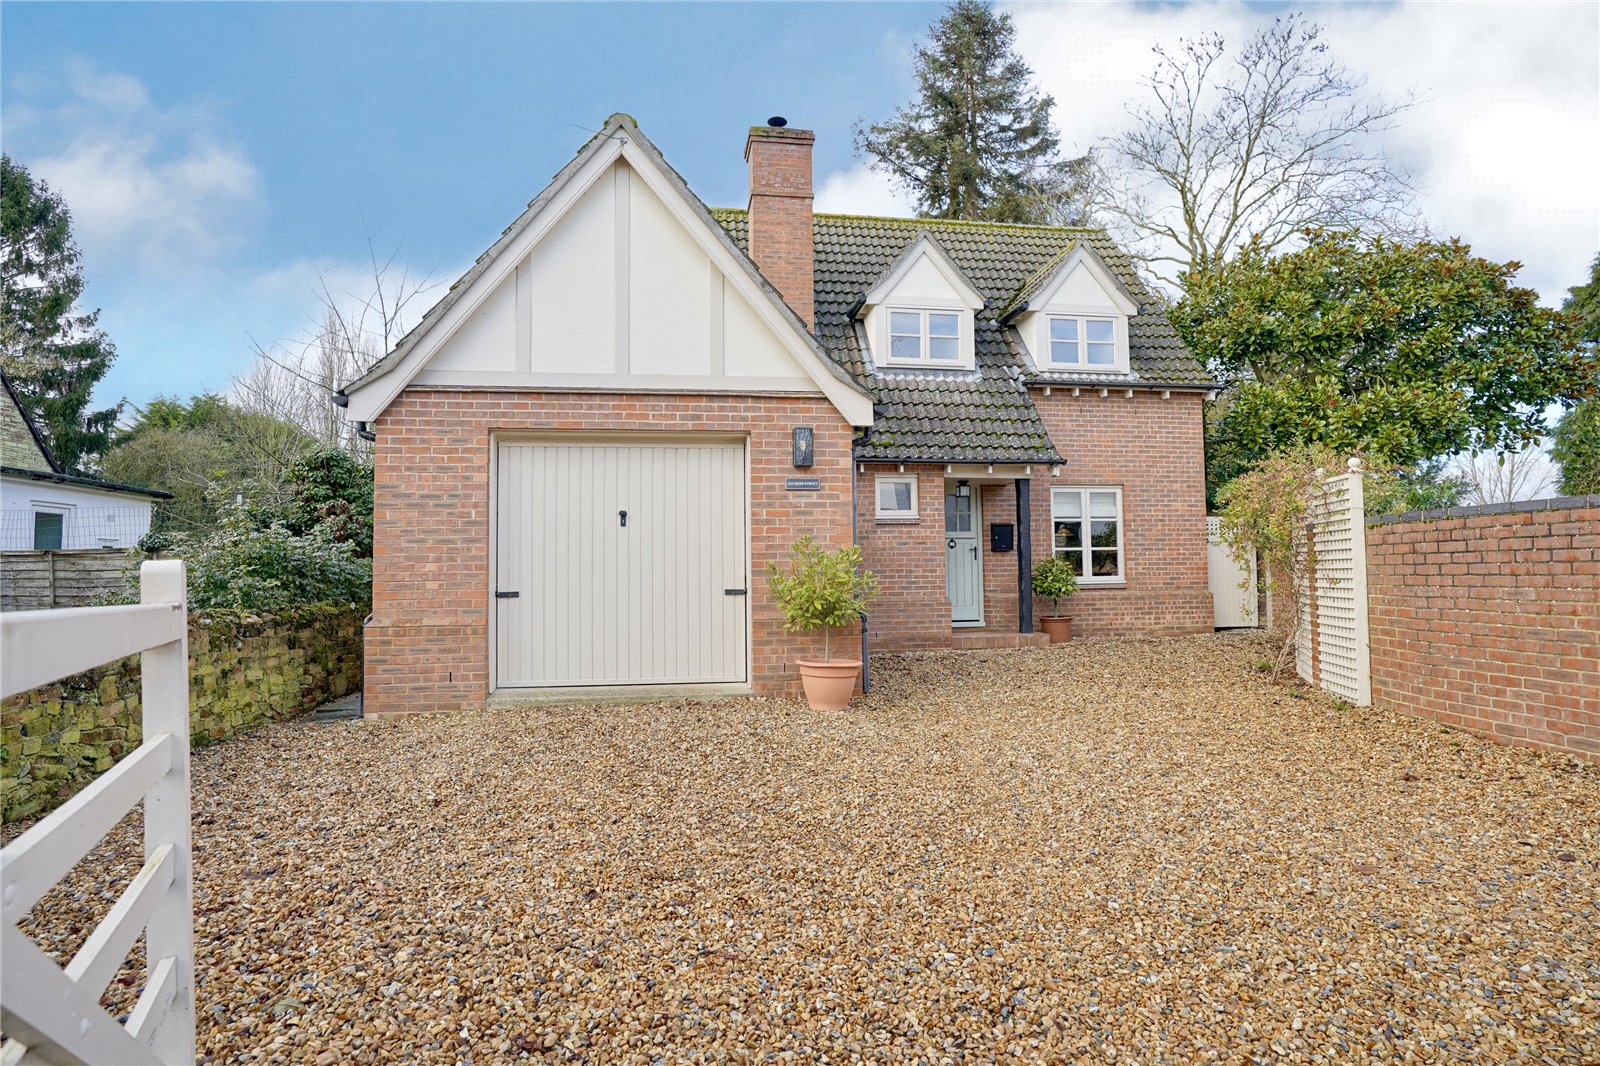 3 bed house for sale in Bluntisham, PE28 3LD - Property Image 1